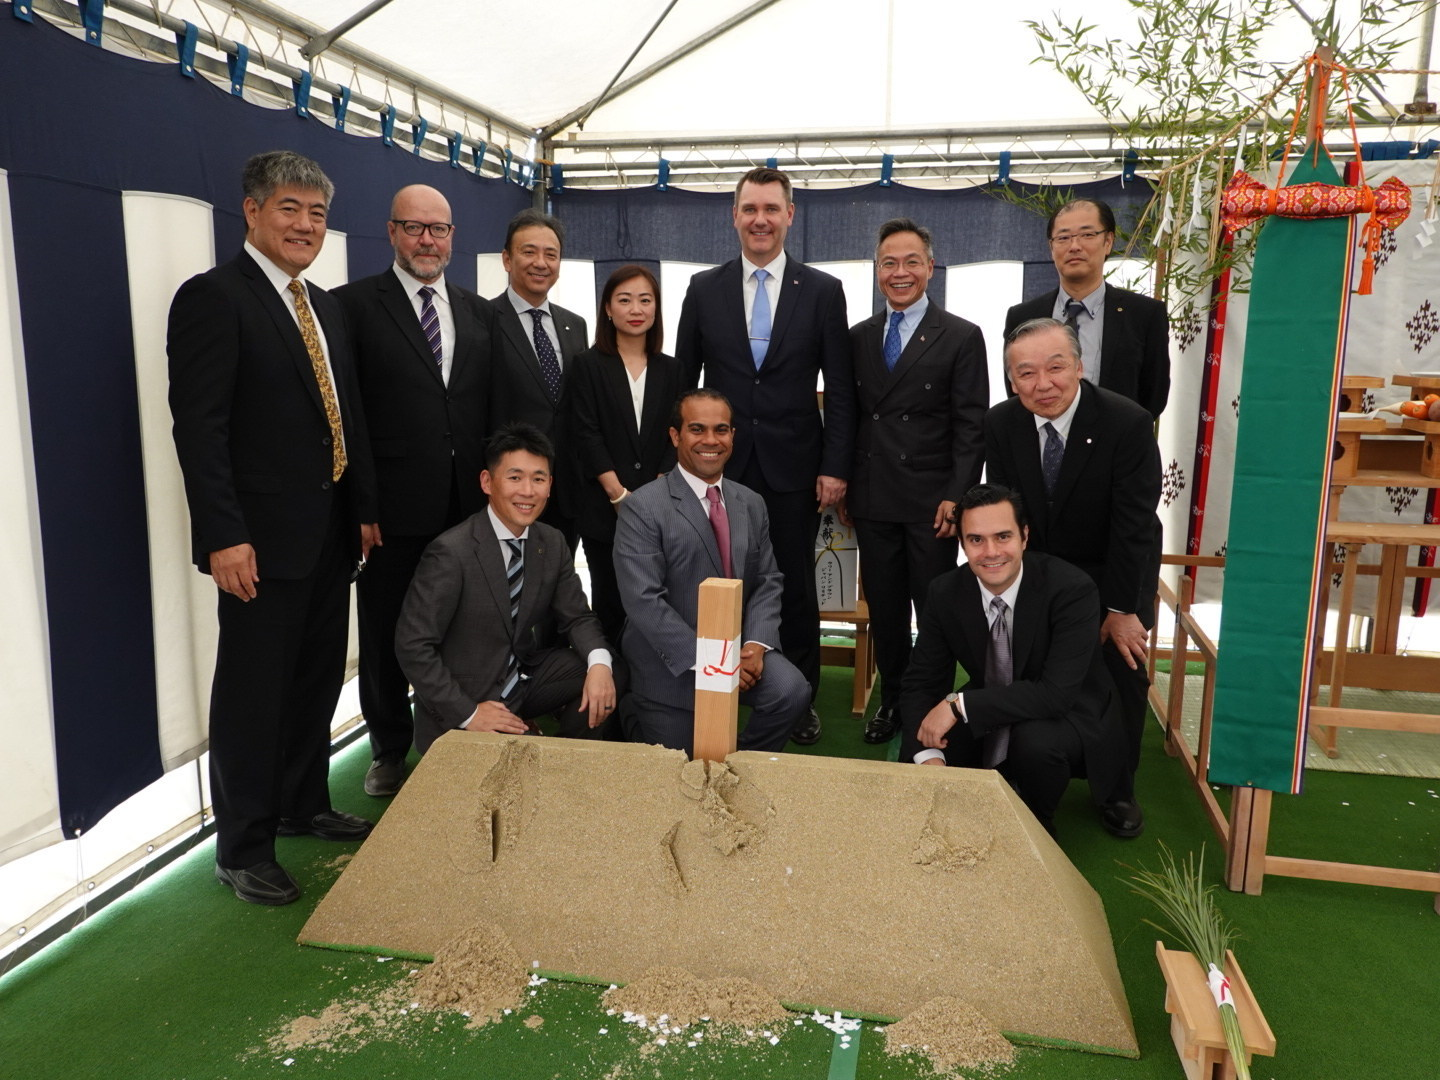 Carnival Corporation today officially began construction on the cruise industry's first cruise terminal at the port of Sasebo in Japan with a groundbreaking ceremony attended by government, business and community representatives